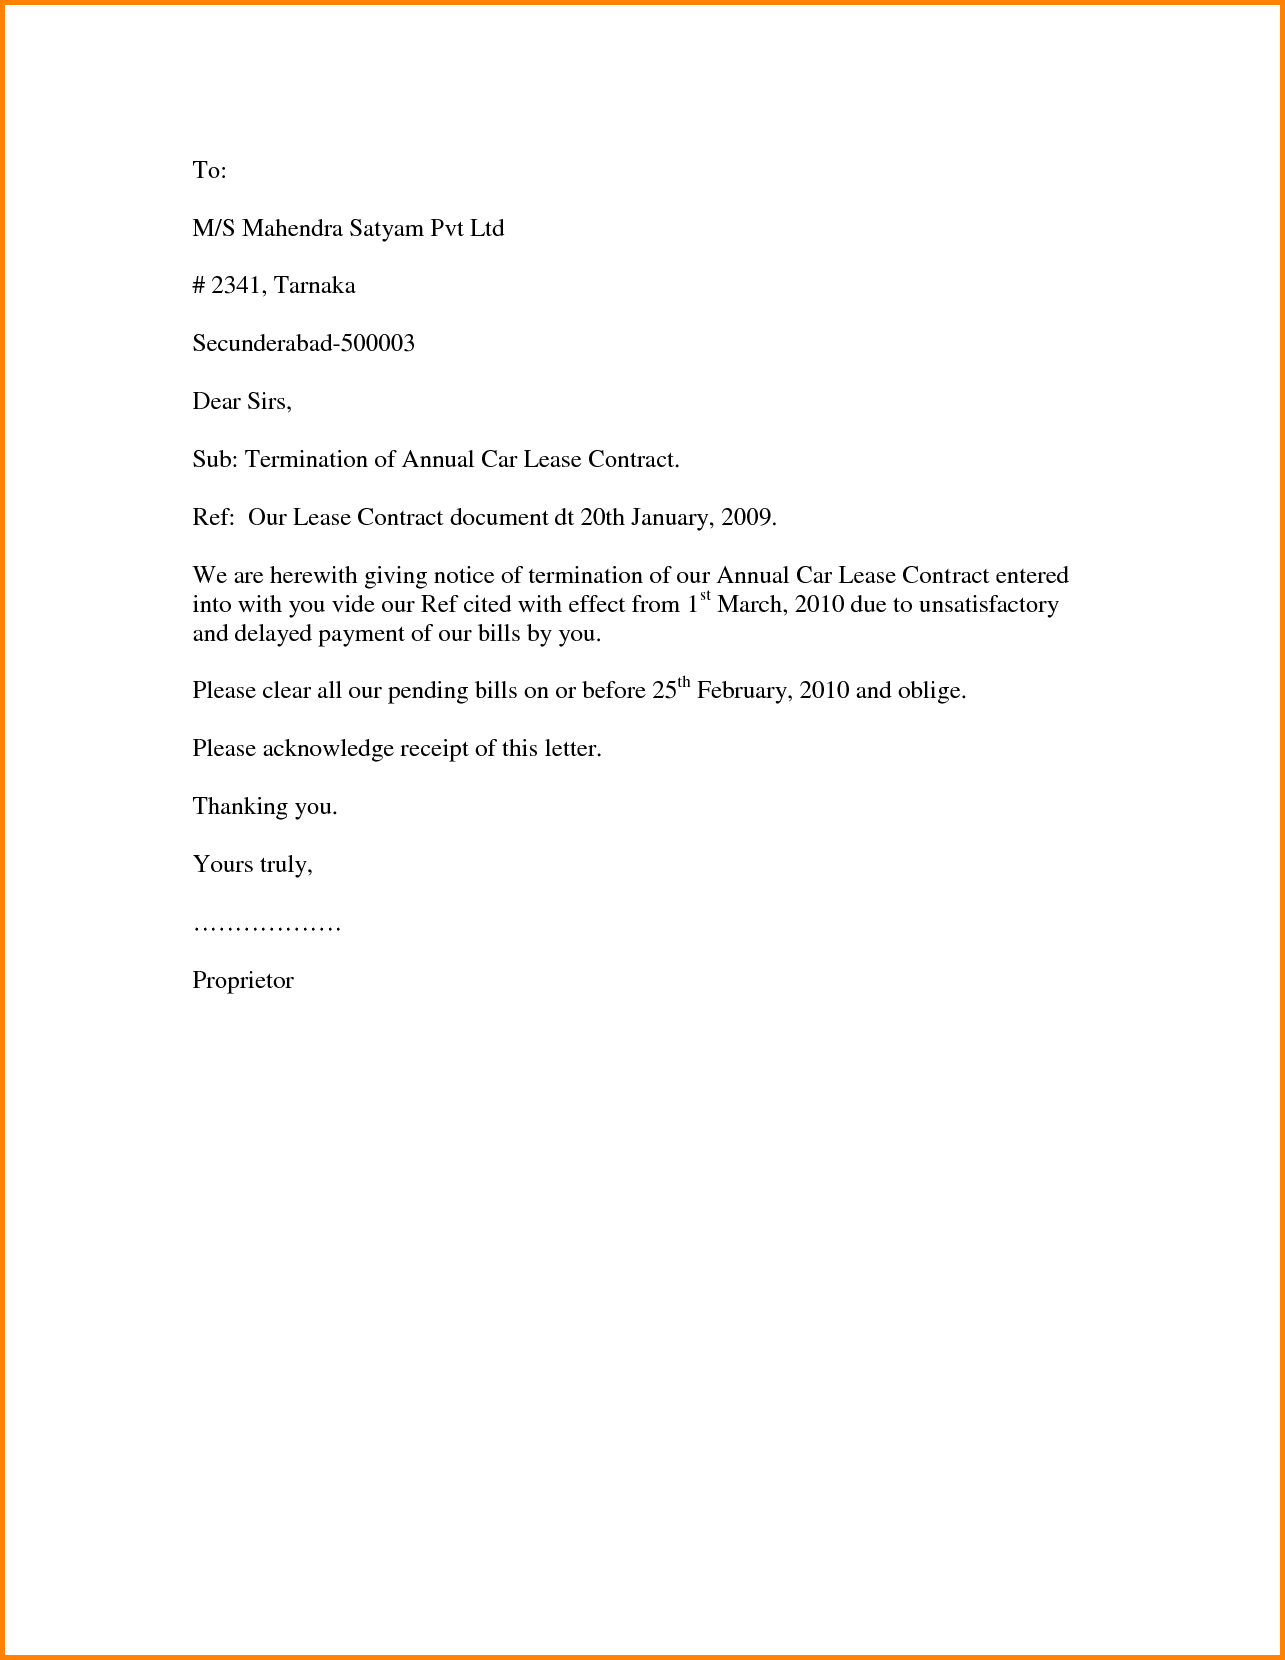 termination of contract agreement letter template Collection-Letter Template To End A Contract Copy Contract Letter Work Sample 15-d